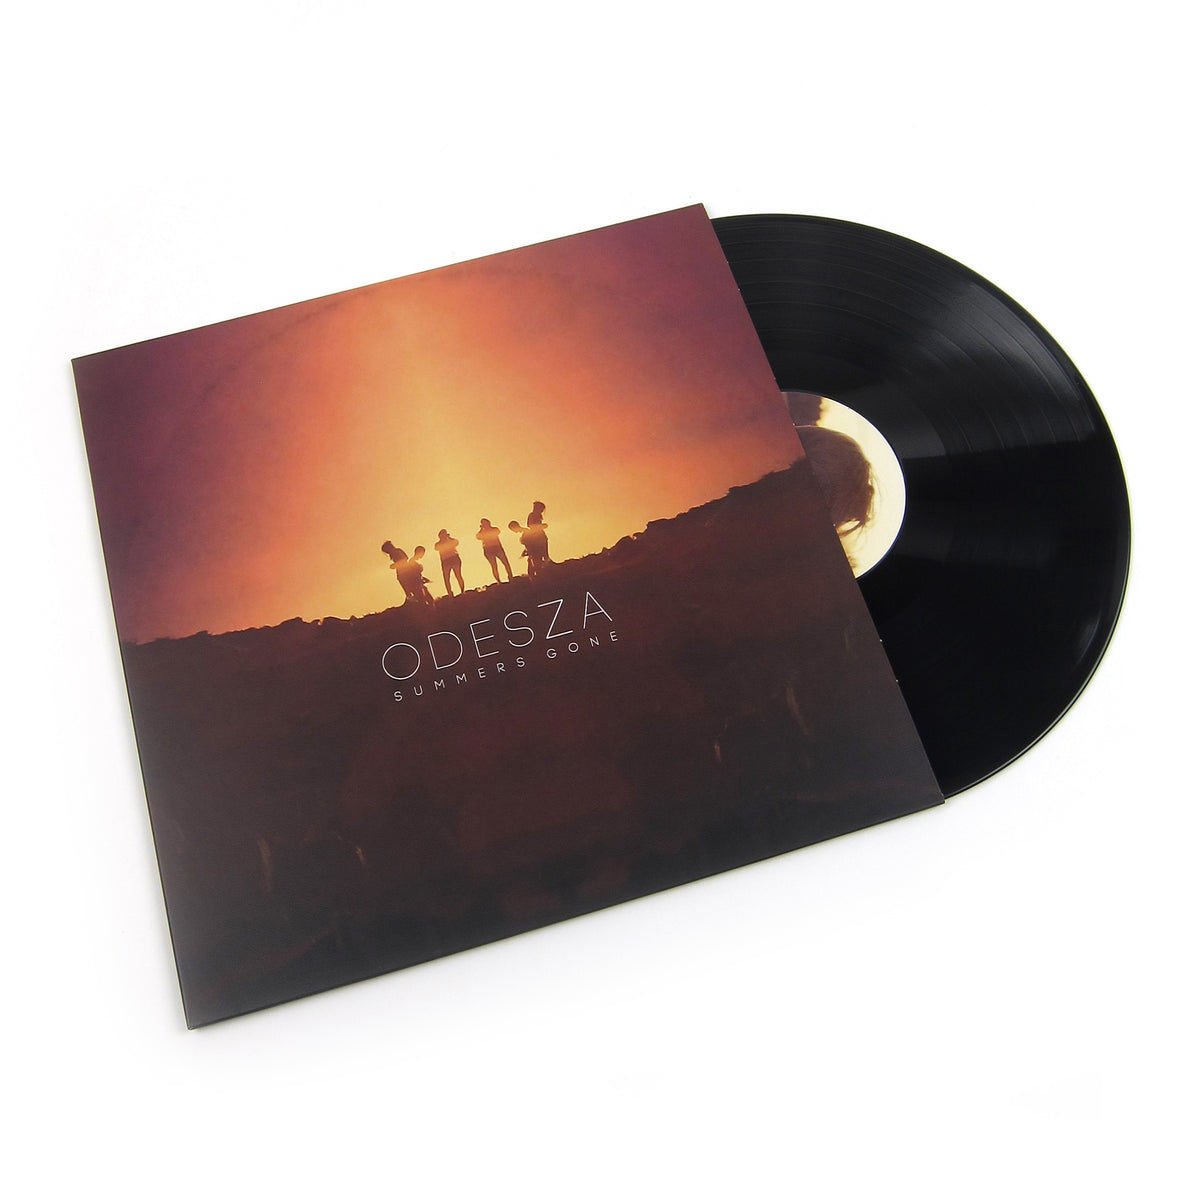 Odesza: Summer's Gone Vinyl LP